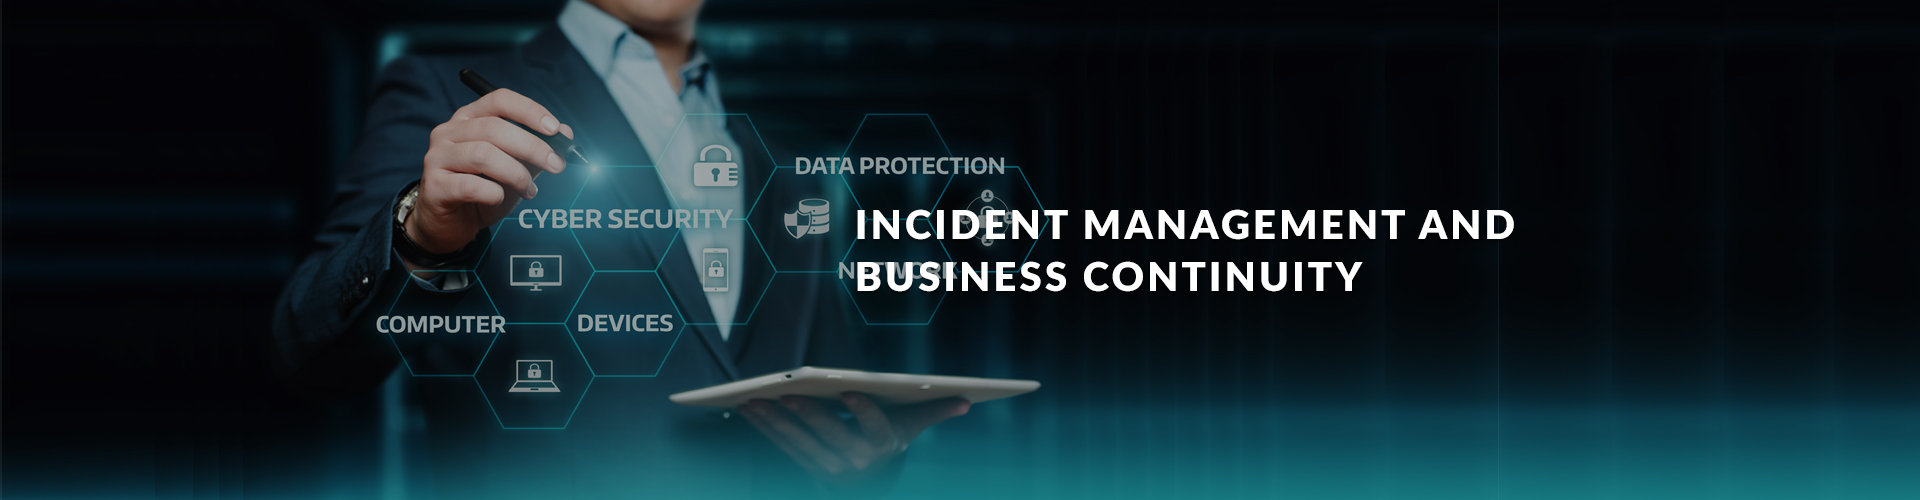 Incident Management and Business Continuity